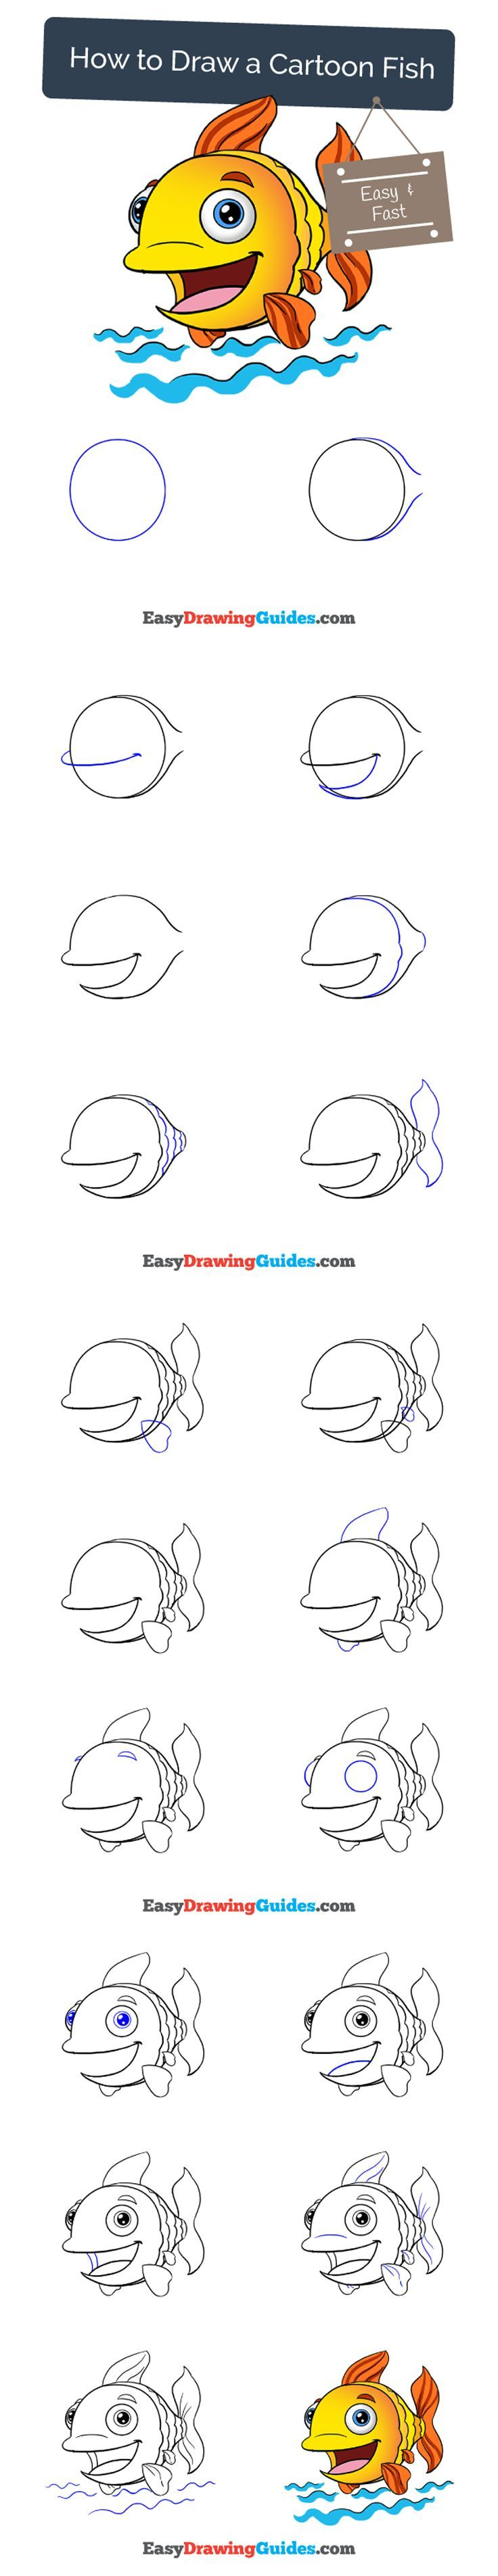 Learn How to Draw a Happy Cartoon Fish: Easy Step-by-Step Drawing Tutorial for Kids and Beginners. #fish #cartoon #drawing #tutorial. See the full tutorial at https://easydrawingguides.com/how-to-draw-a-cartoon-fish/